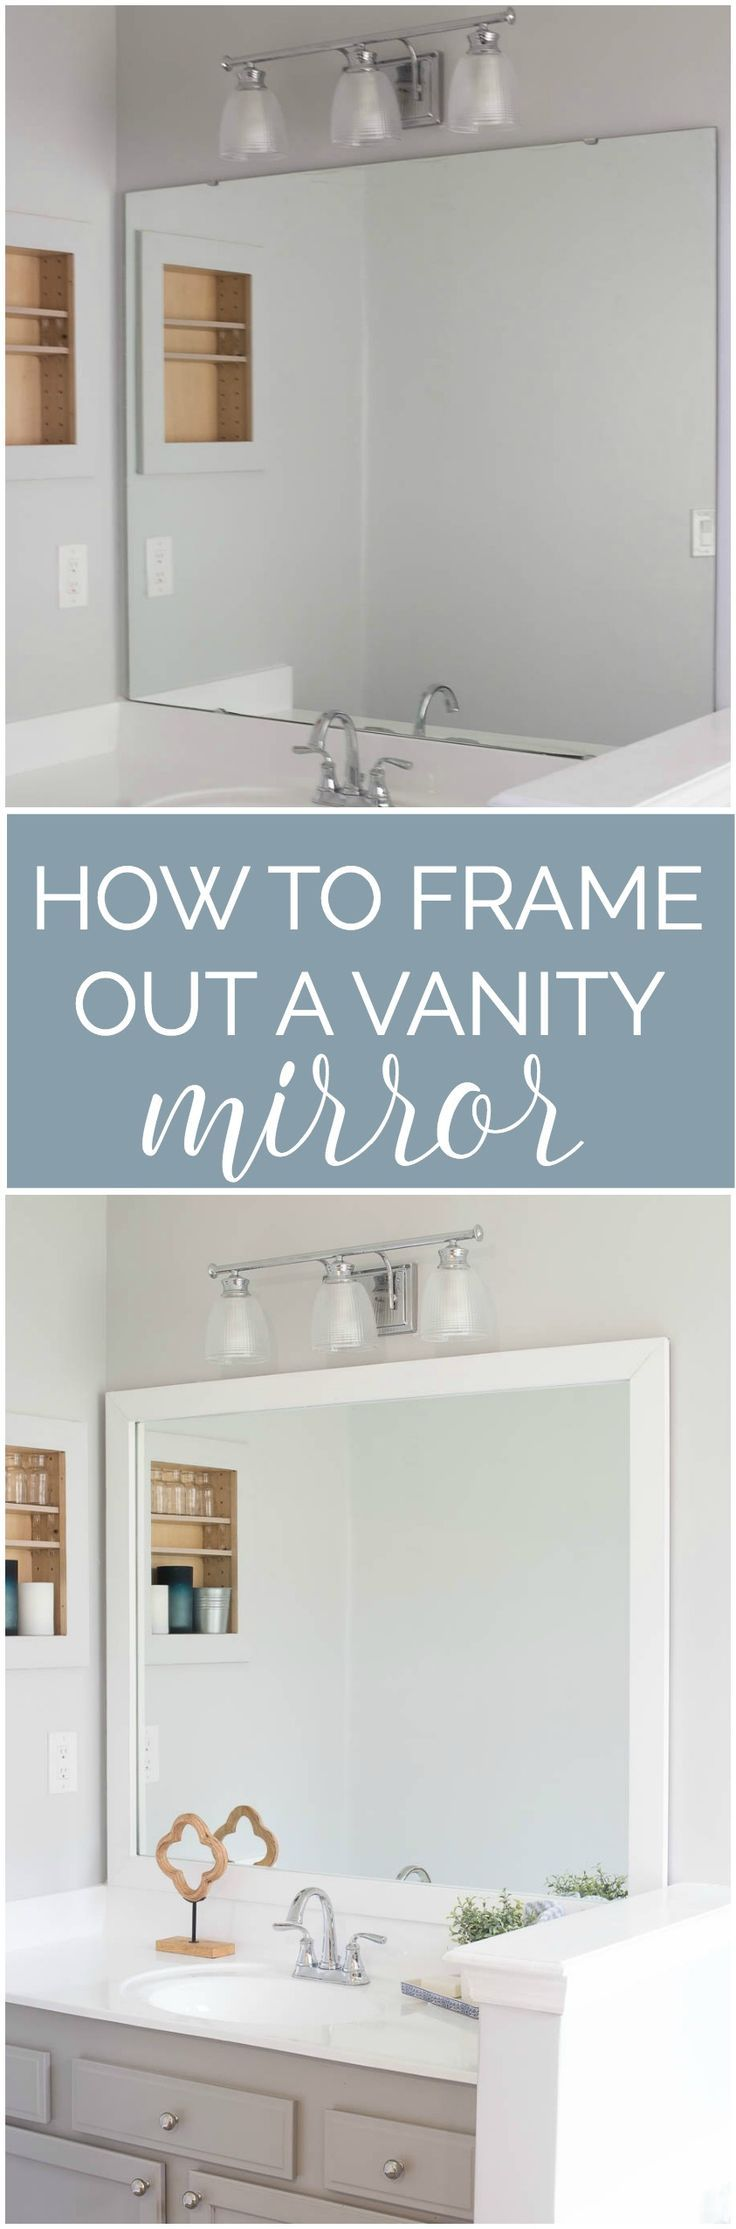 Bathroom Mirrors Ideas With Vanity how to frame a bathroom mirror - easy diy project | bathroom